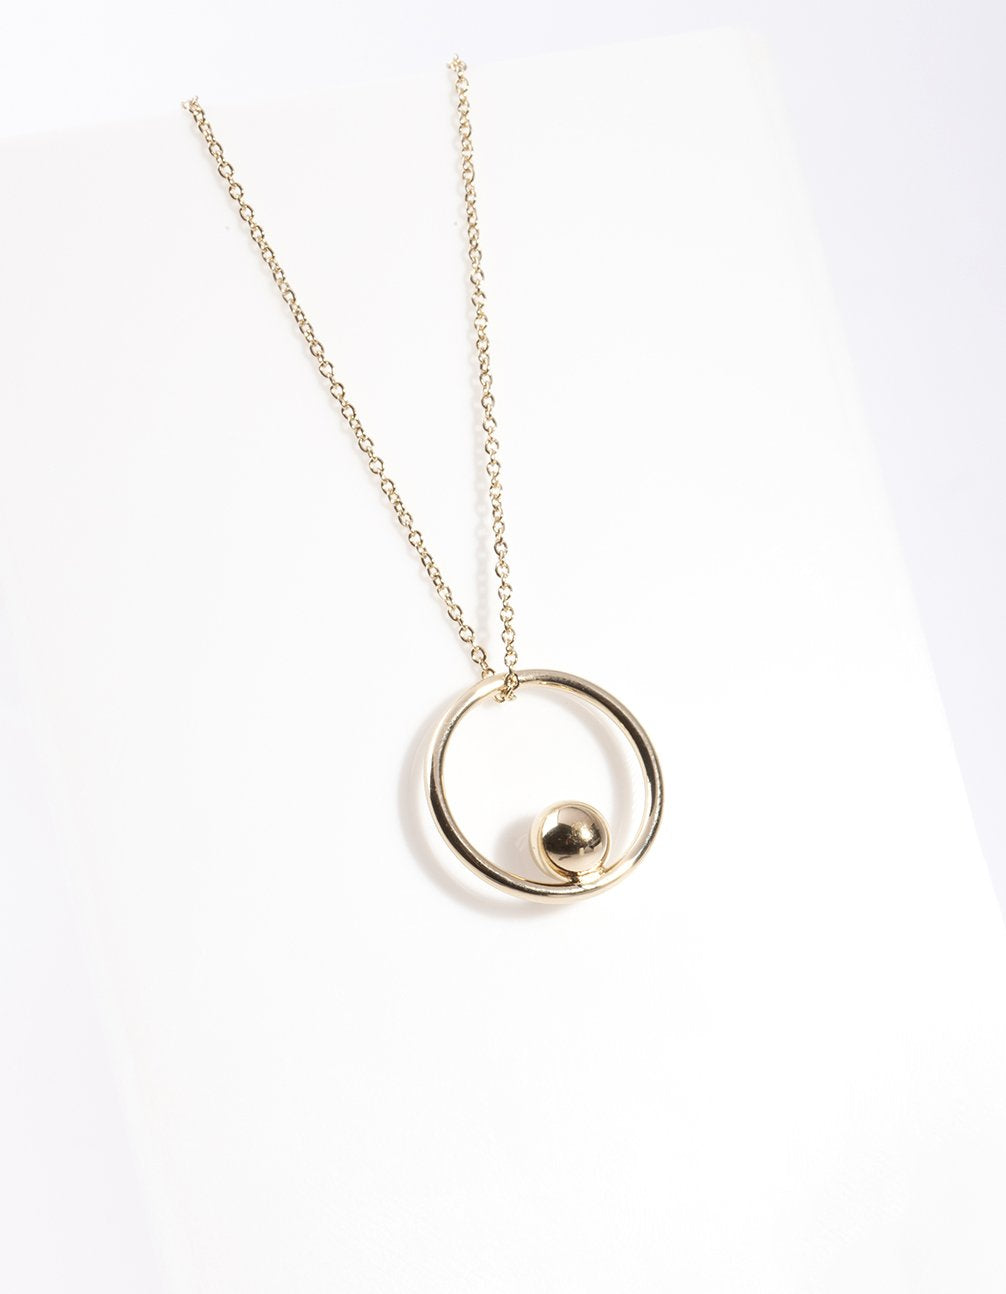 Gold Plated Sterling Silver Open Circle Ball Necklace